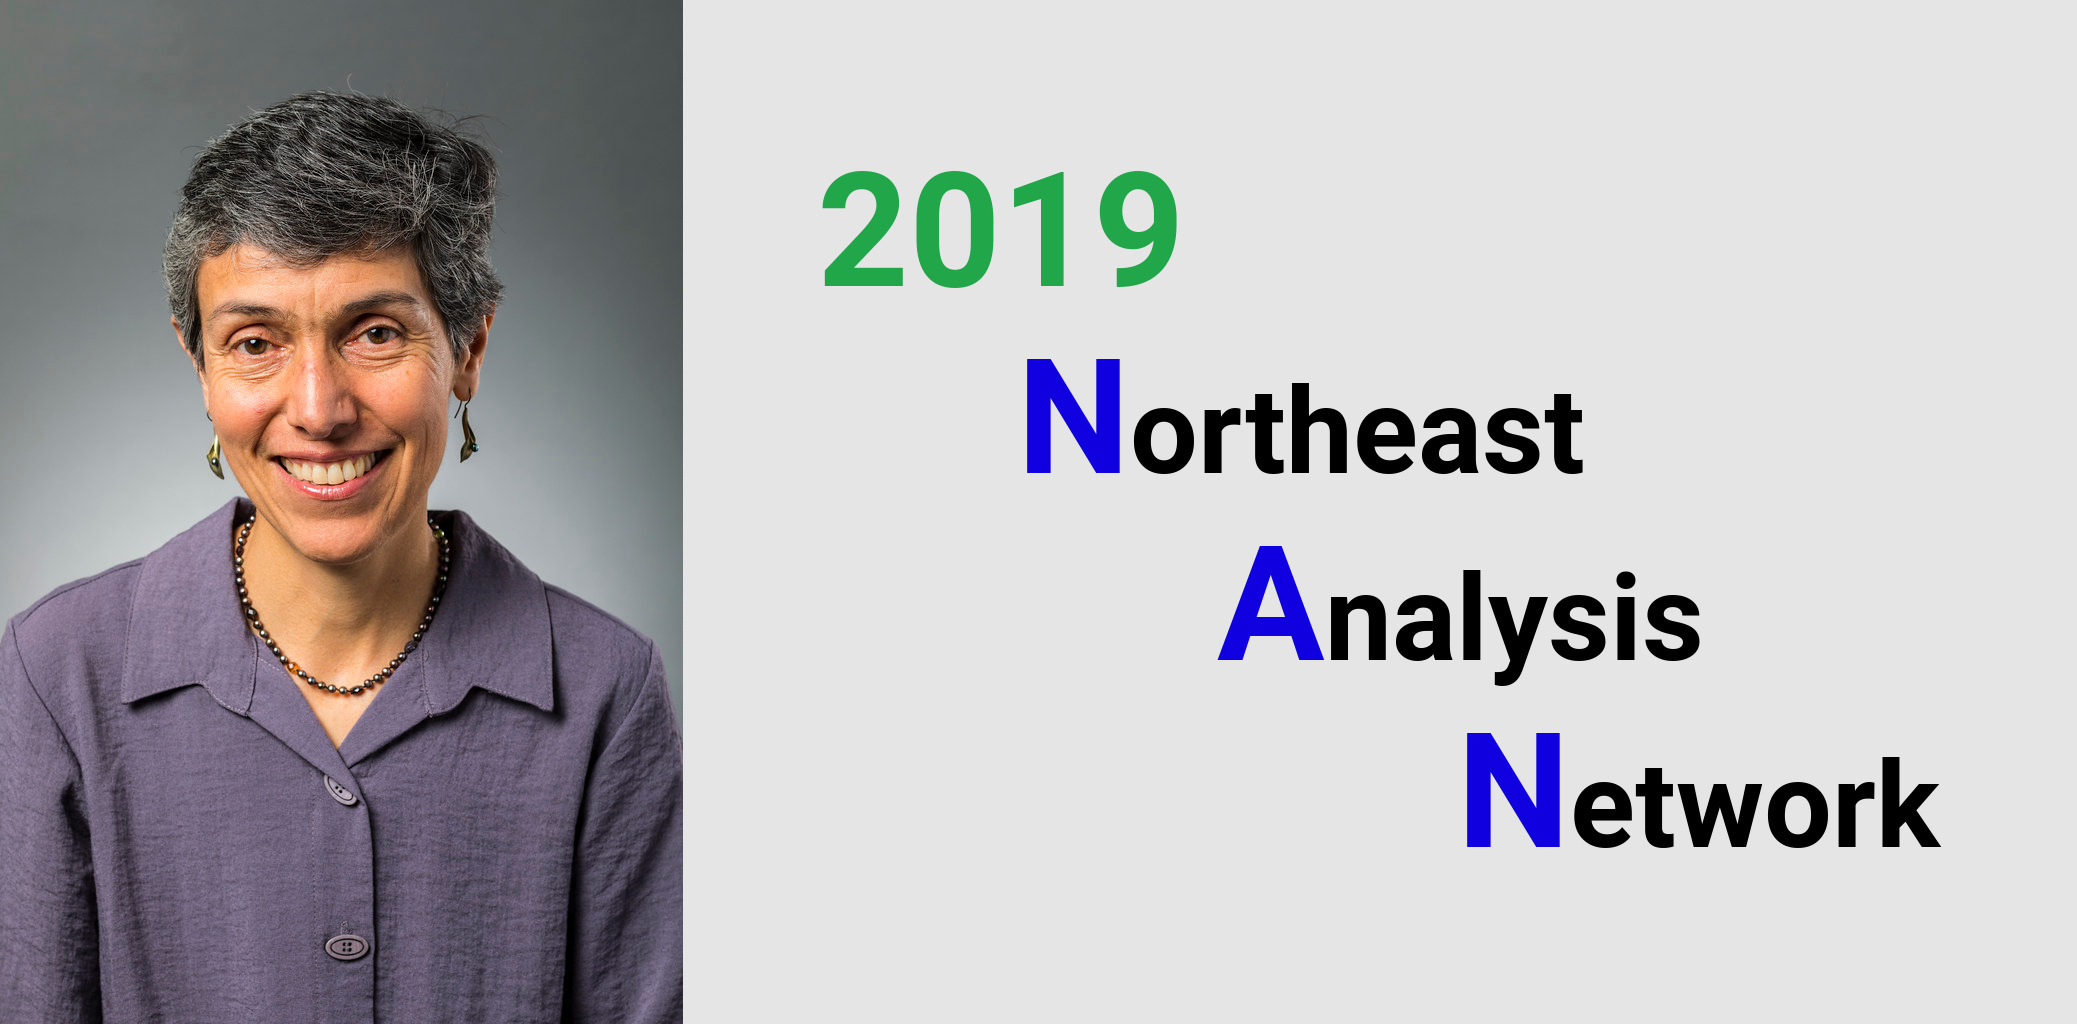 2019 Northeast Analysis Network